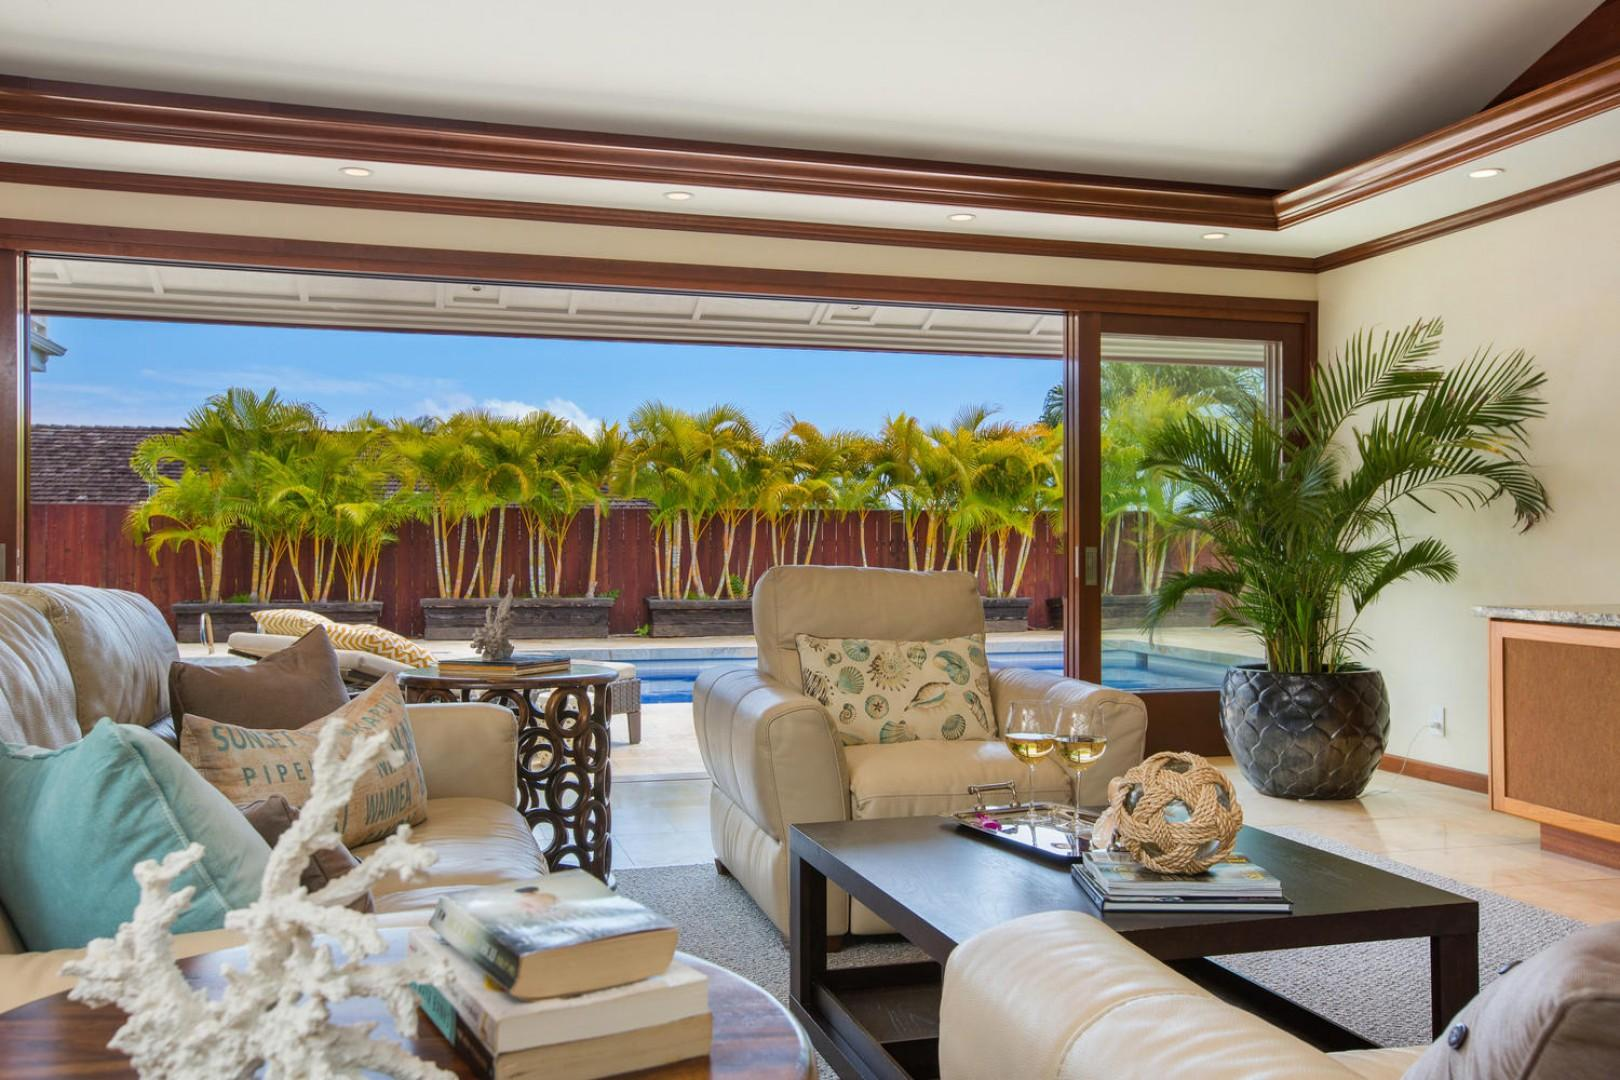 The open living room floor plan with vaulted ceilings flows seamlessly to the outdoors with a 16-foot-tall cherry wood door system that lets the gentle Hawaiian breeze sweep through.